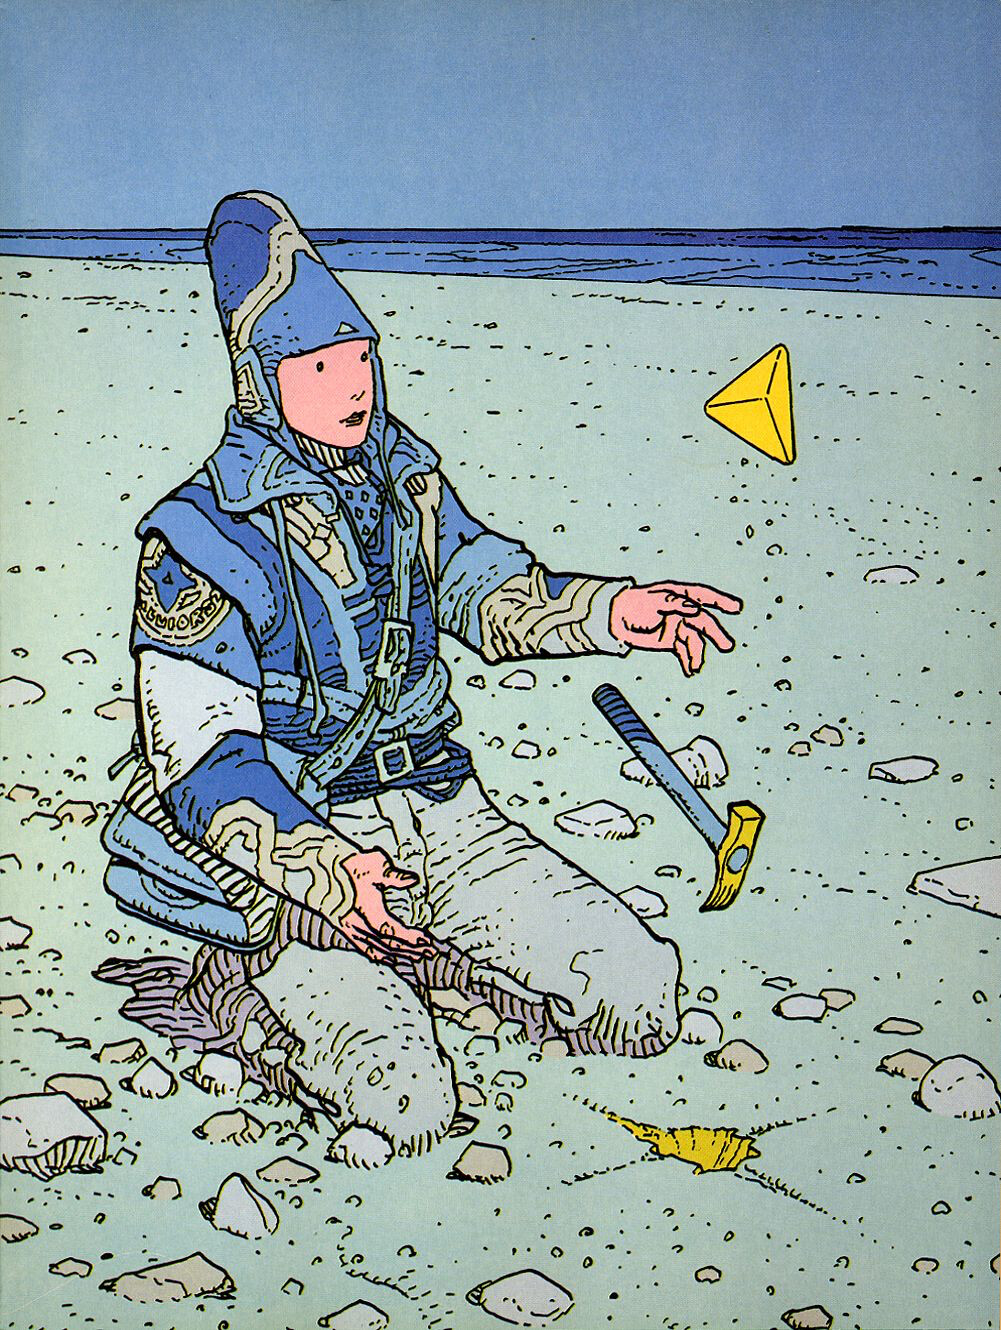 Reference piece by Jean Giraud from the Blue Pyramid